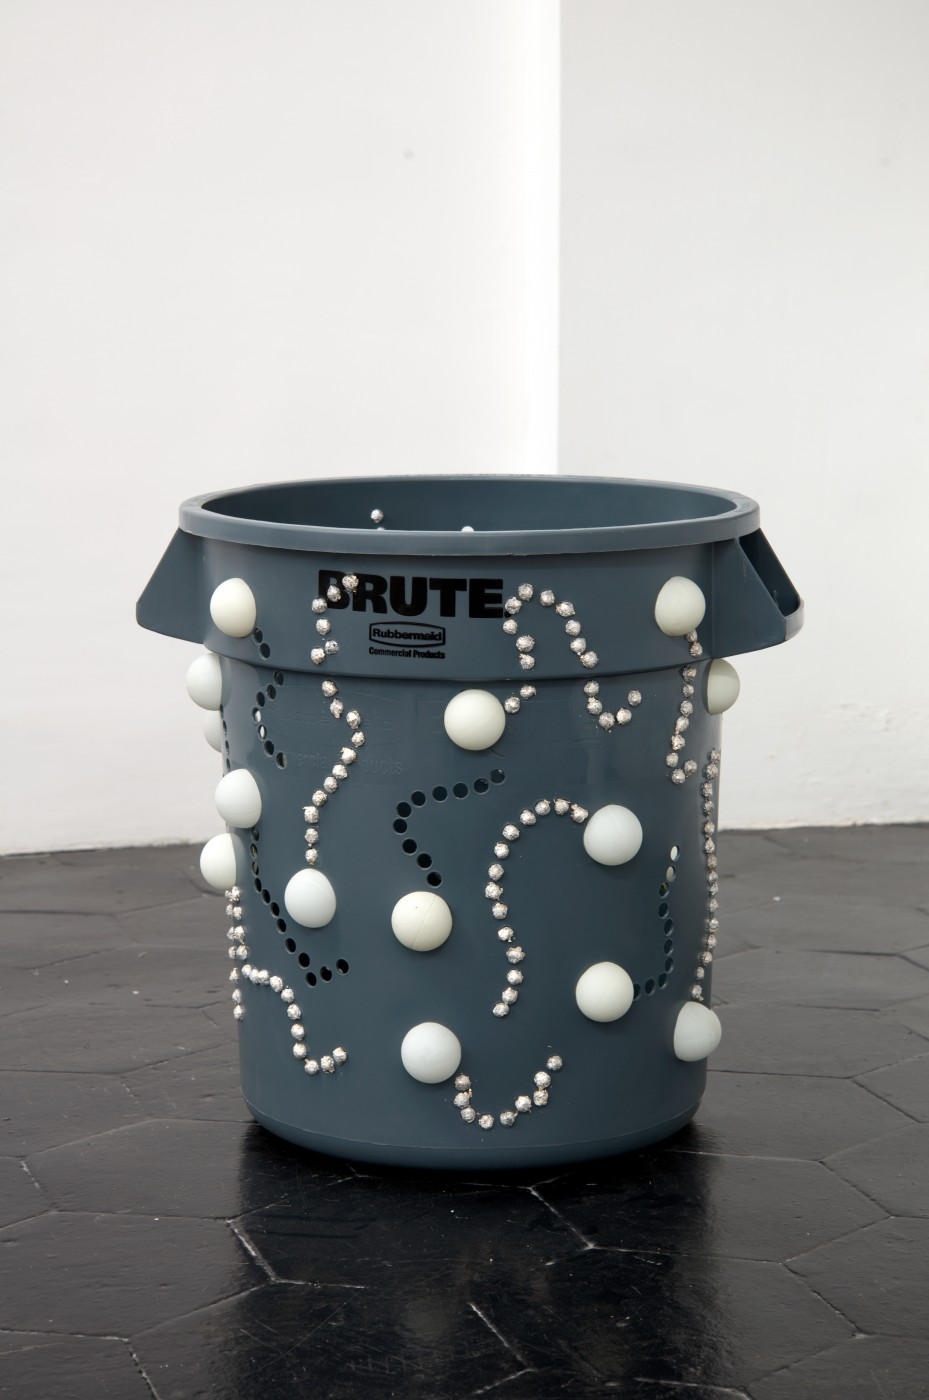 APPLE OF EARTH Nancy Lupo,  Stars, Stiga, Skybounce, Sperm</I>, 2014   10-gallon Rubbermaid Brute container in gray, Stiga, Skybounce and Gamecraft ping pong balls, aluminum foil balls and edible silver leaf   43.8 x 47 cm / 17.25 x 18.50 in - High Art Gallery Paris